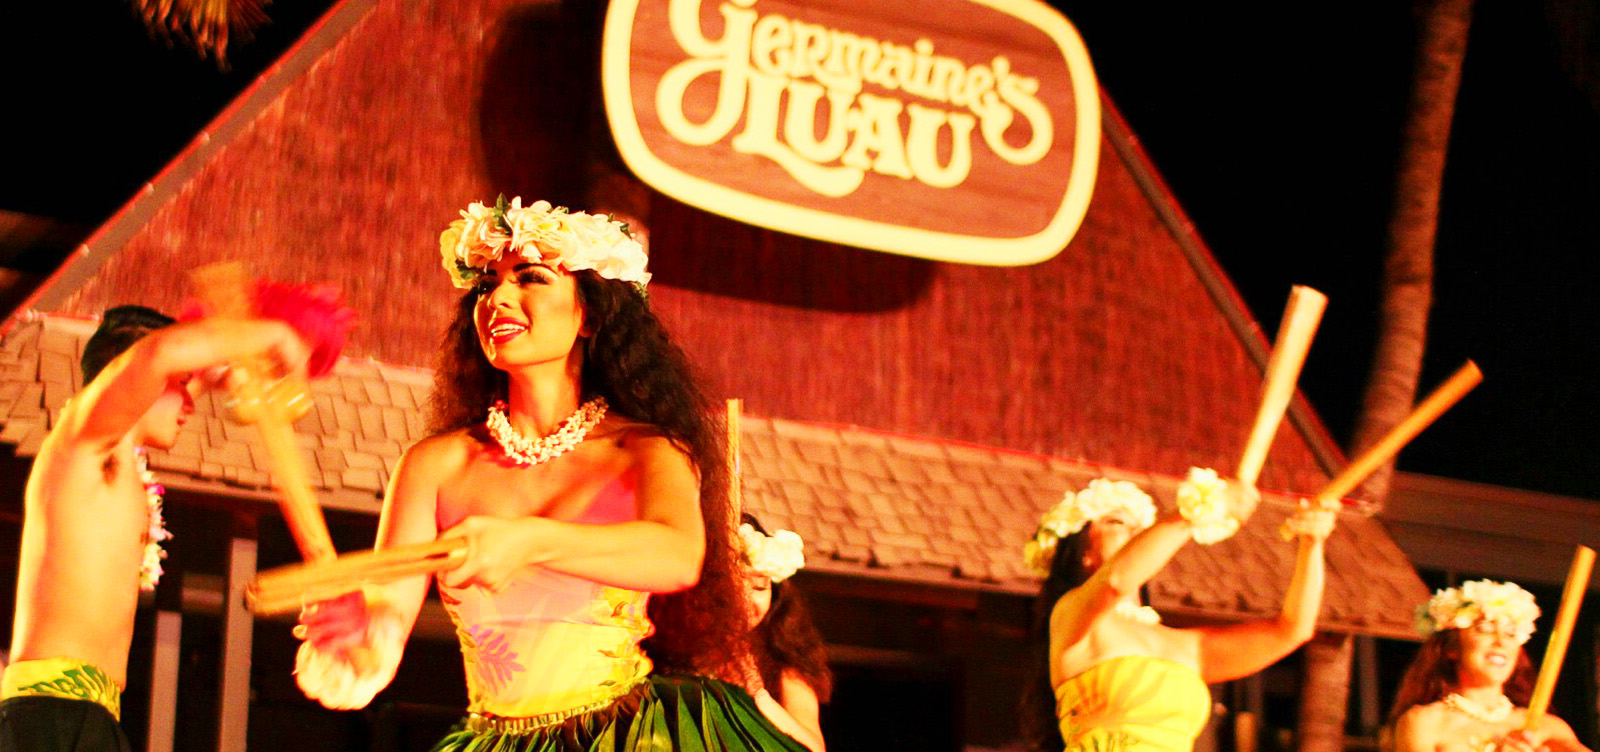 Germaine's Luau Slide 2